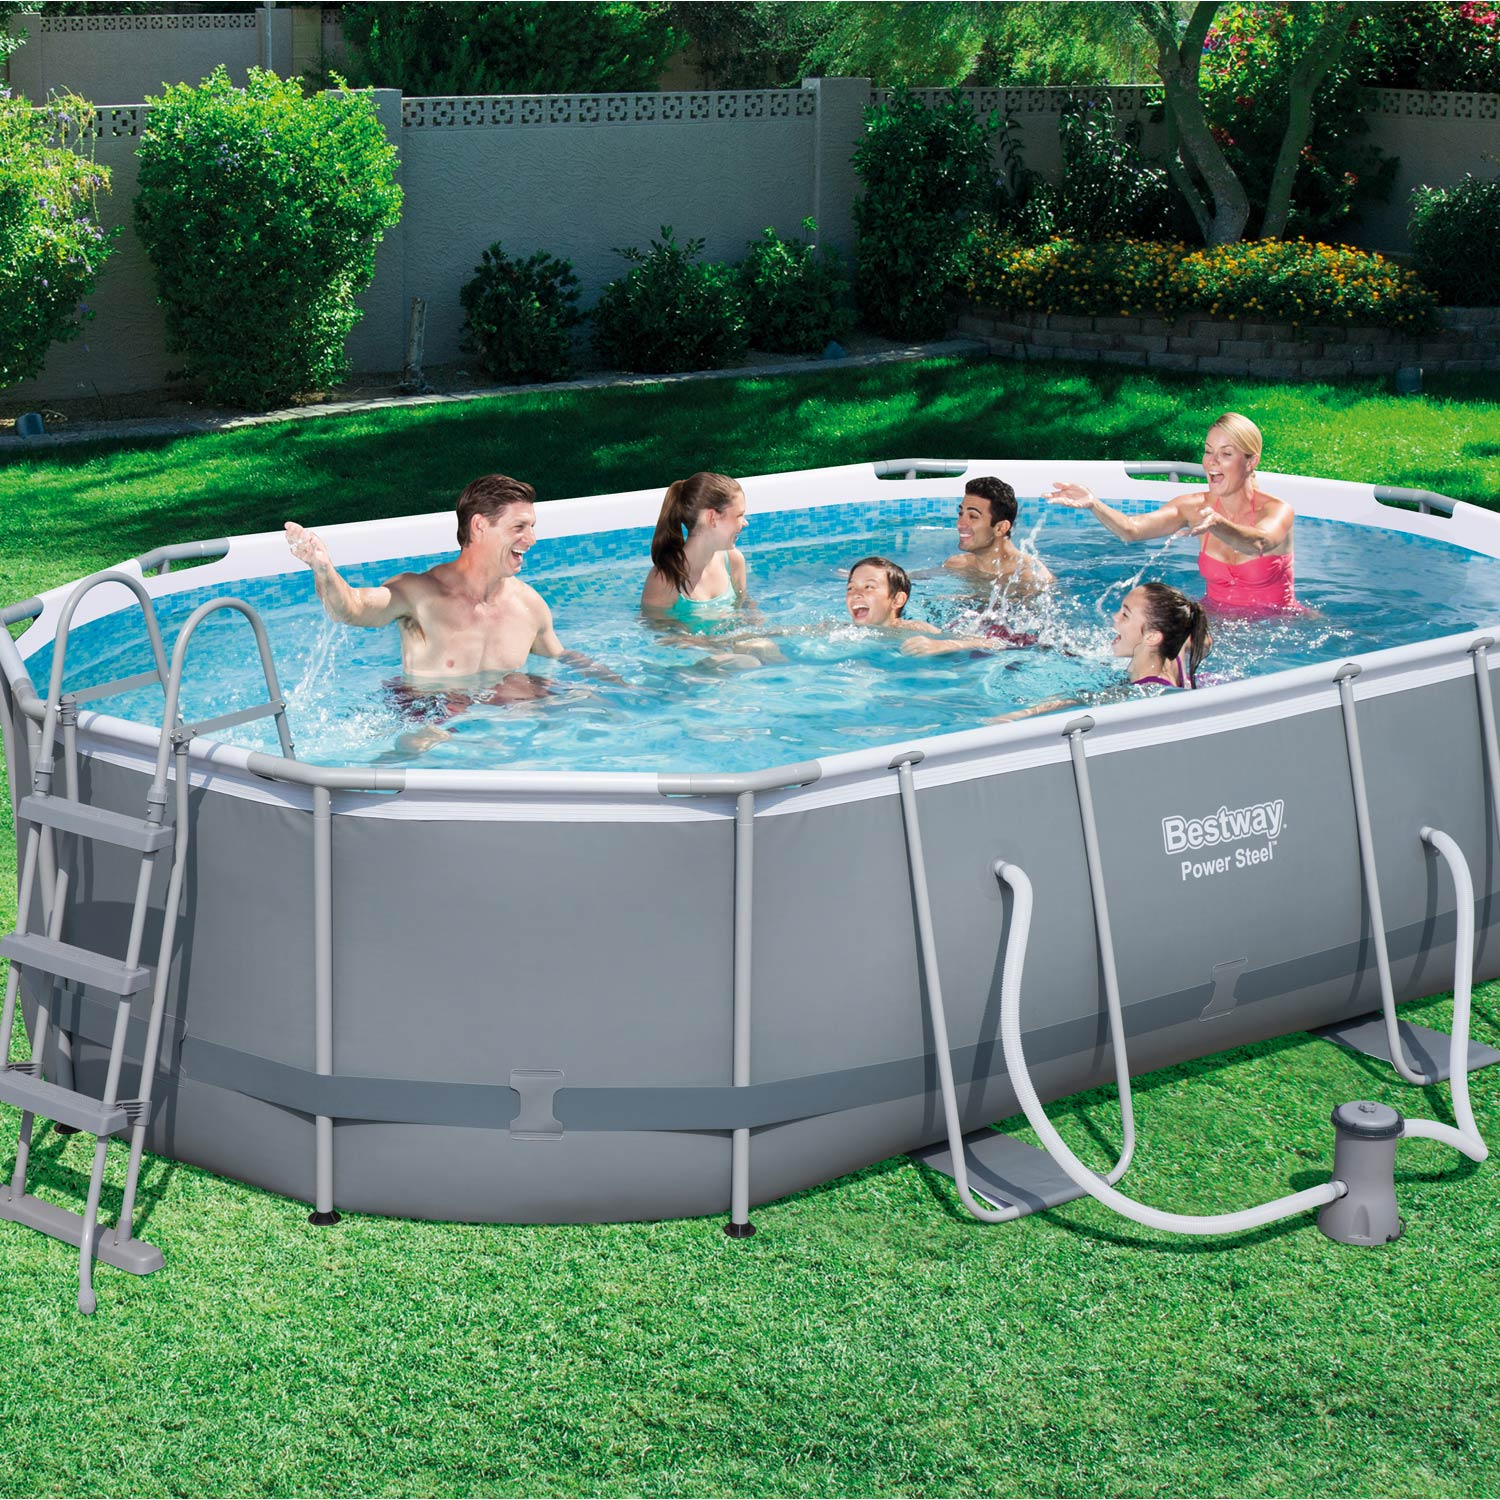 Piscine hors sol autoportante tubulaire bestway l x for Piscine hors sol rectangulaire 4x3